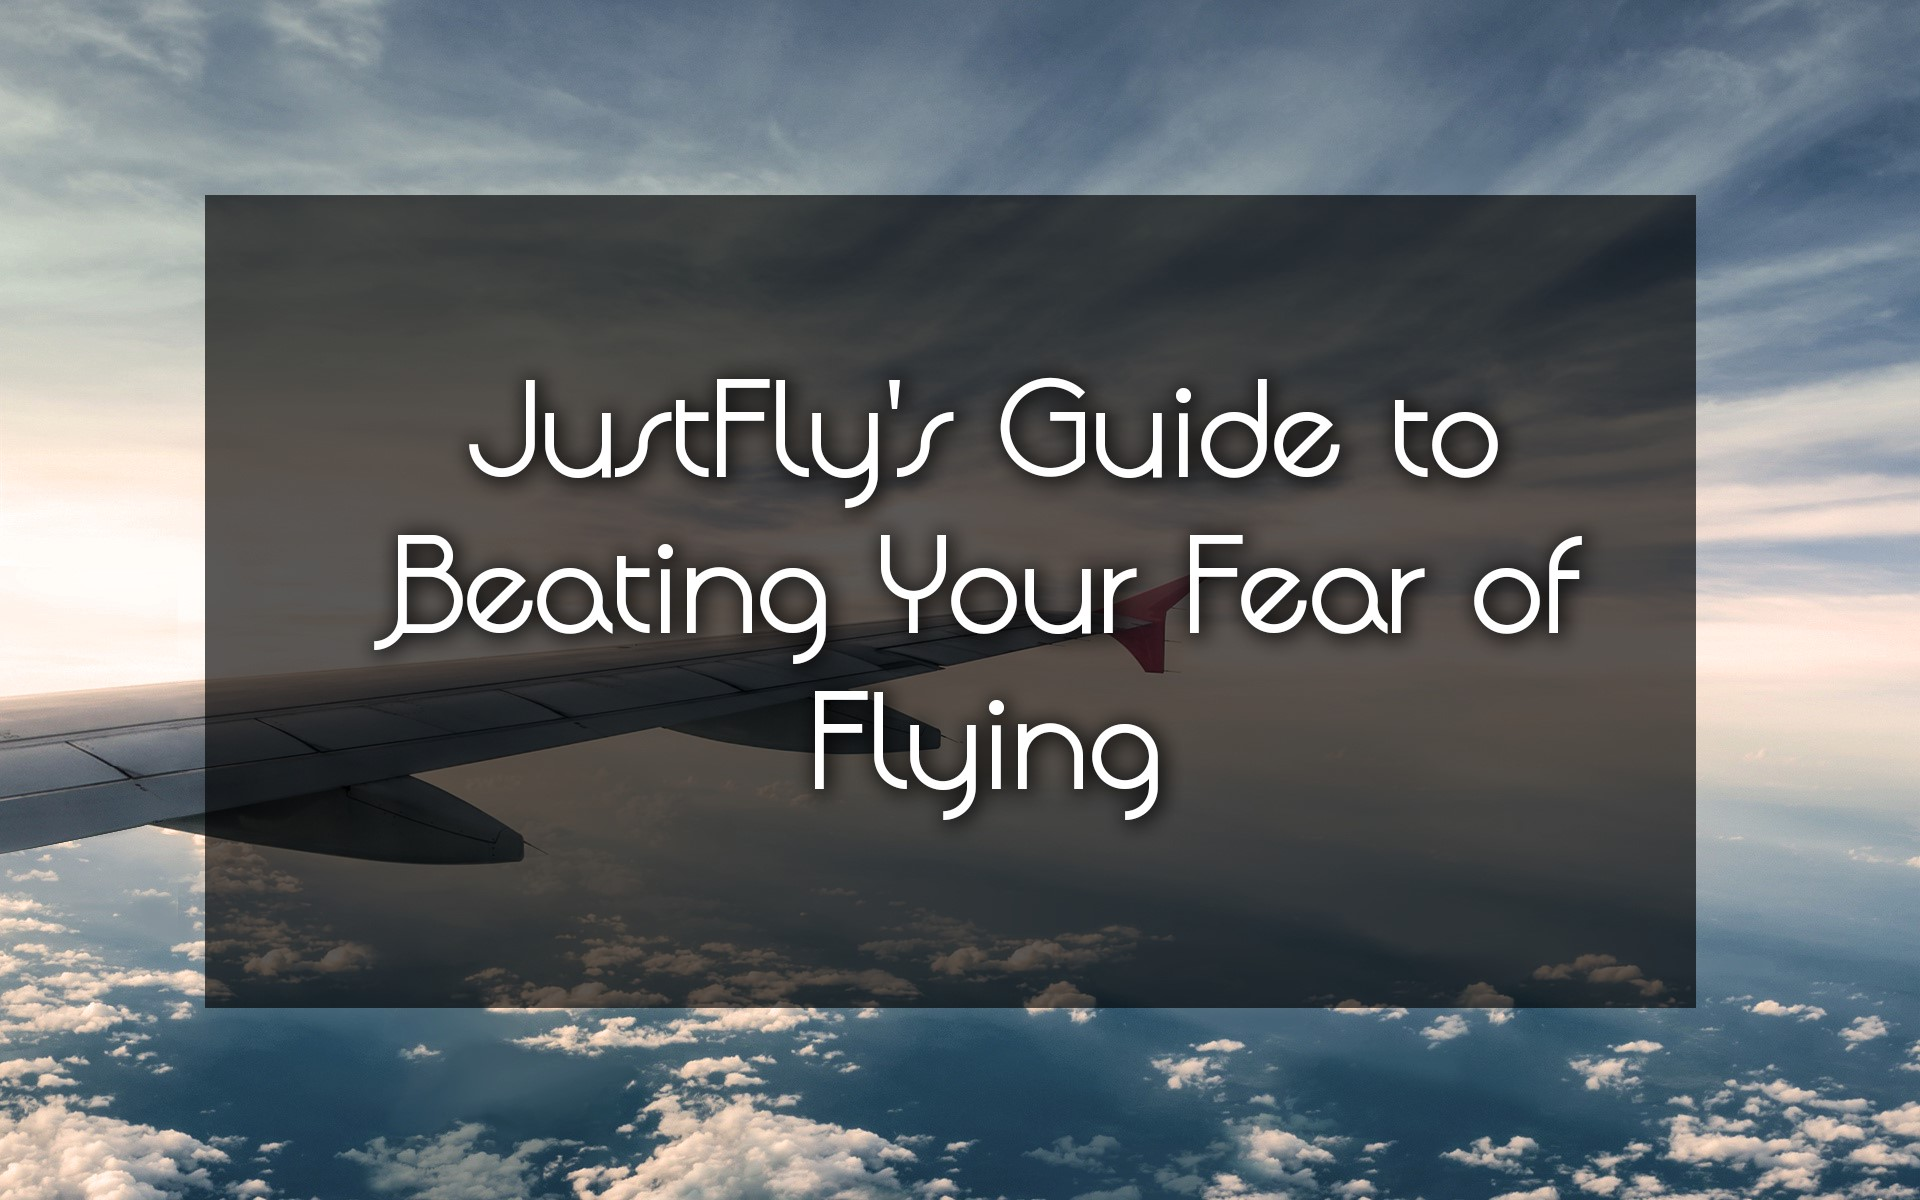 Beating Your Fear of Flying